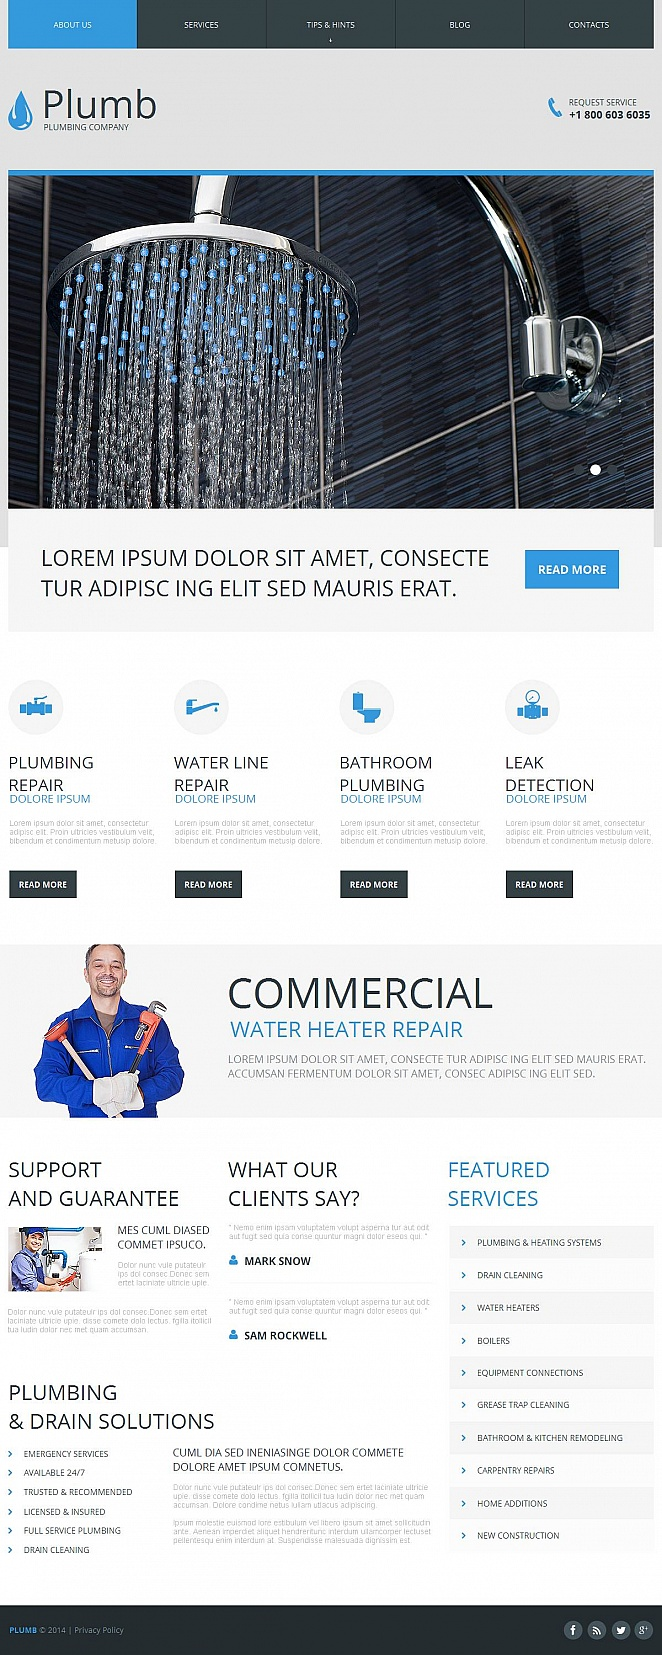 CMS Website Template for Plumbing Company - image